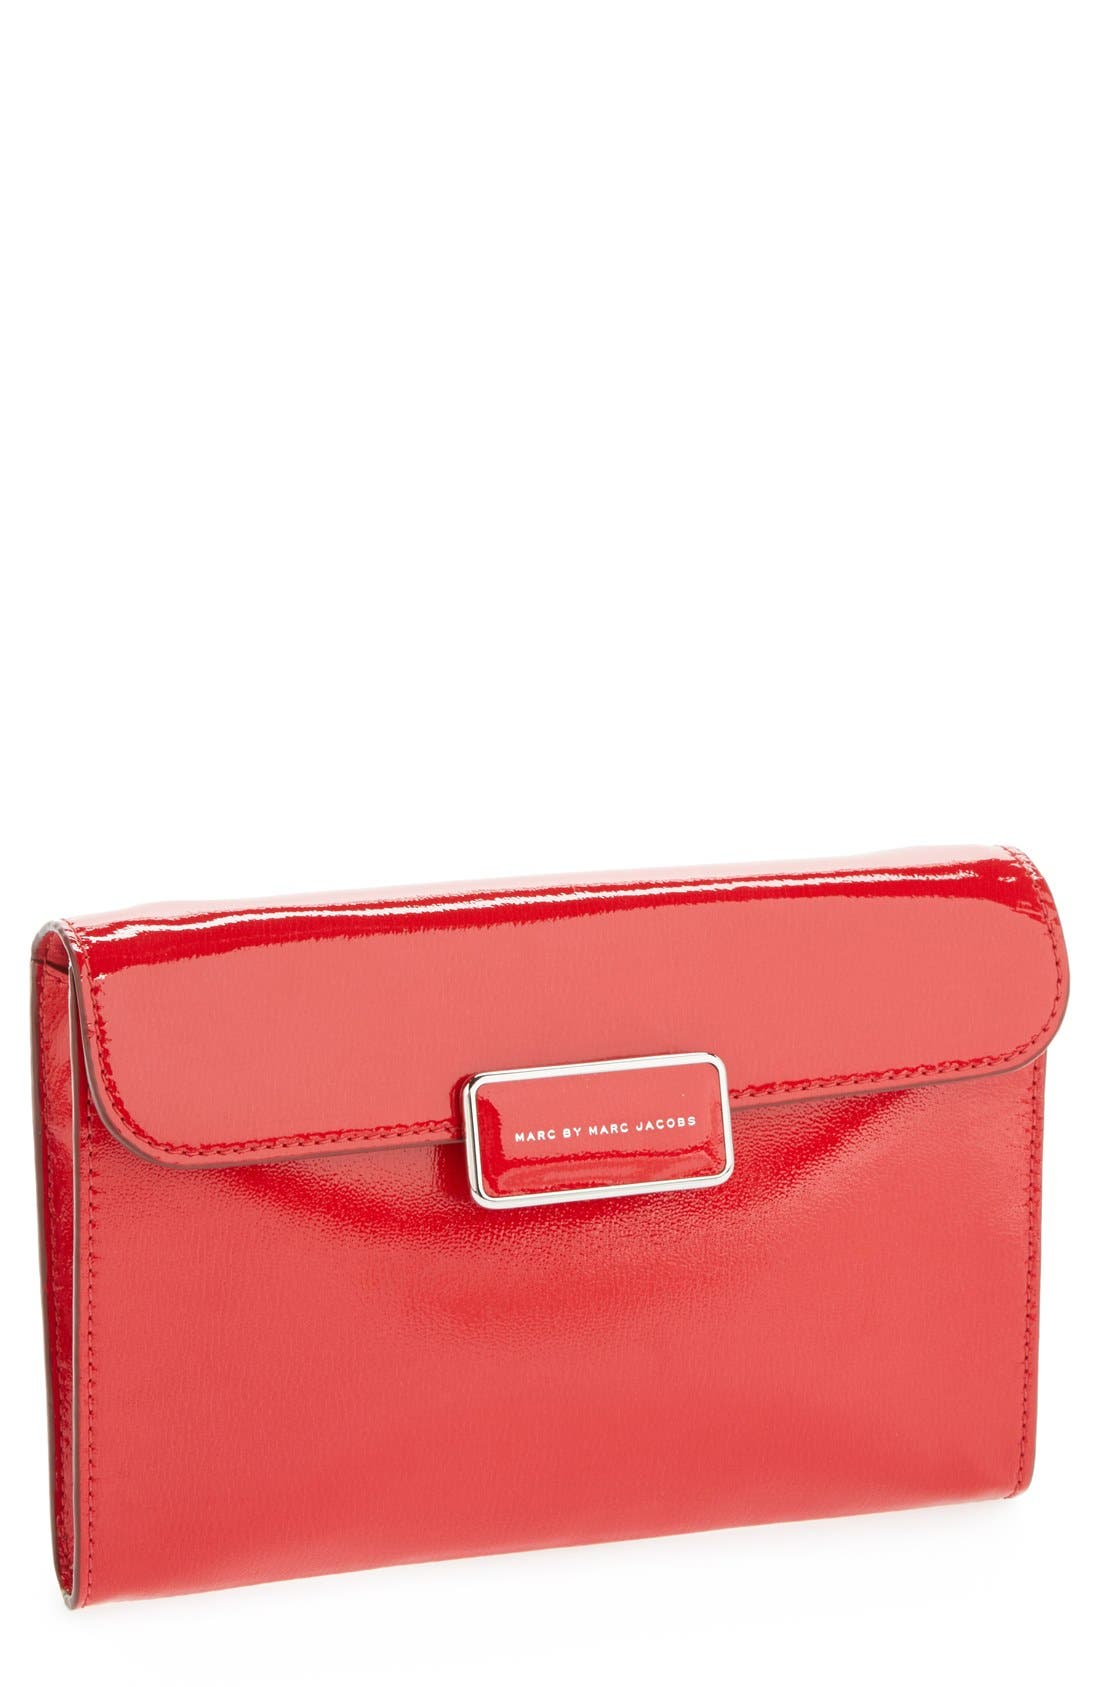 MARC BY MARC JACOBS 'Pegg' Patent Leather Clutch,                             Main thumbnail 1, color,                             600